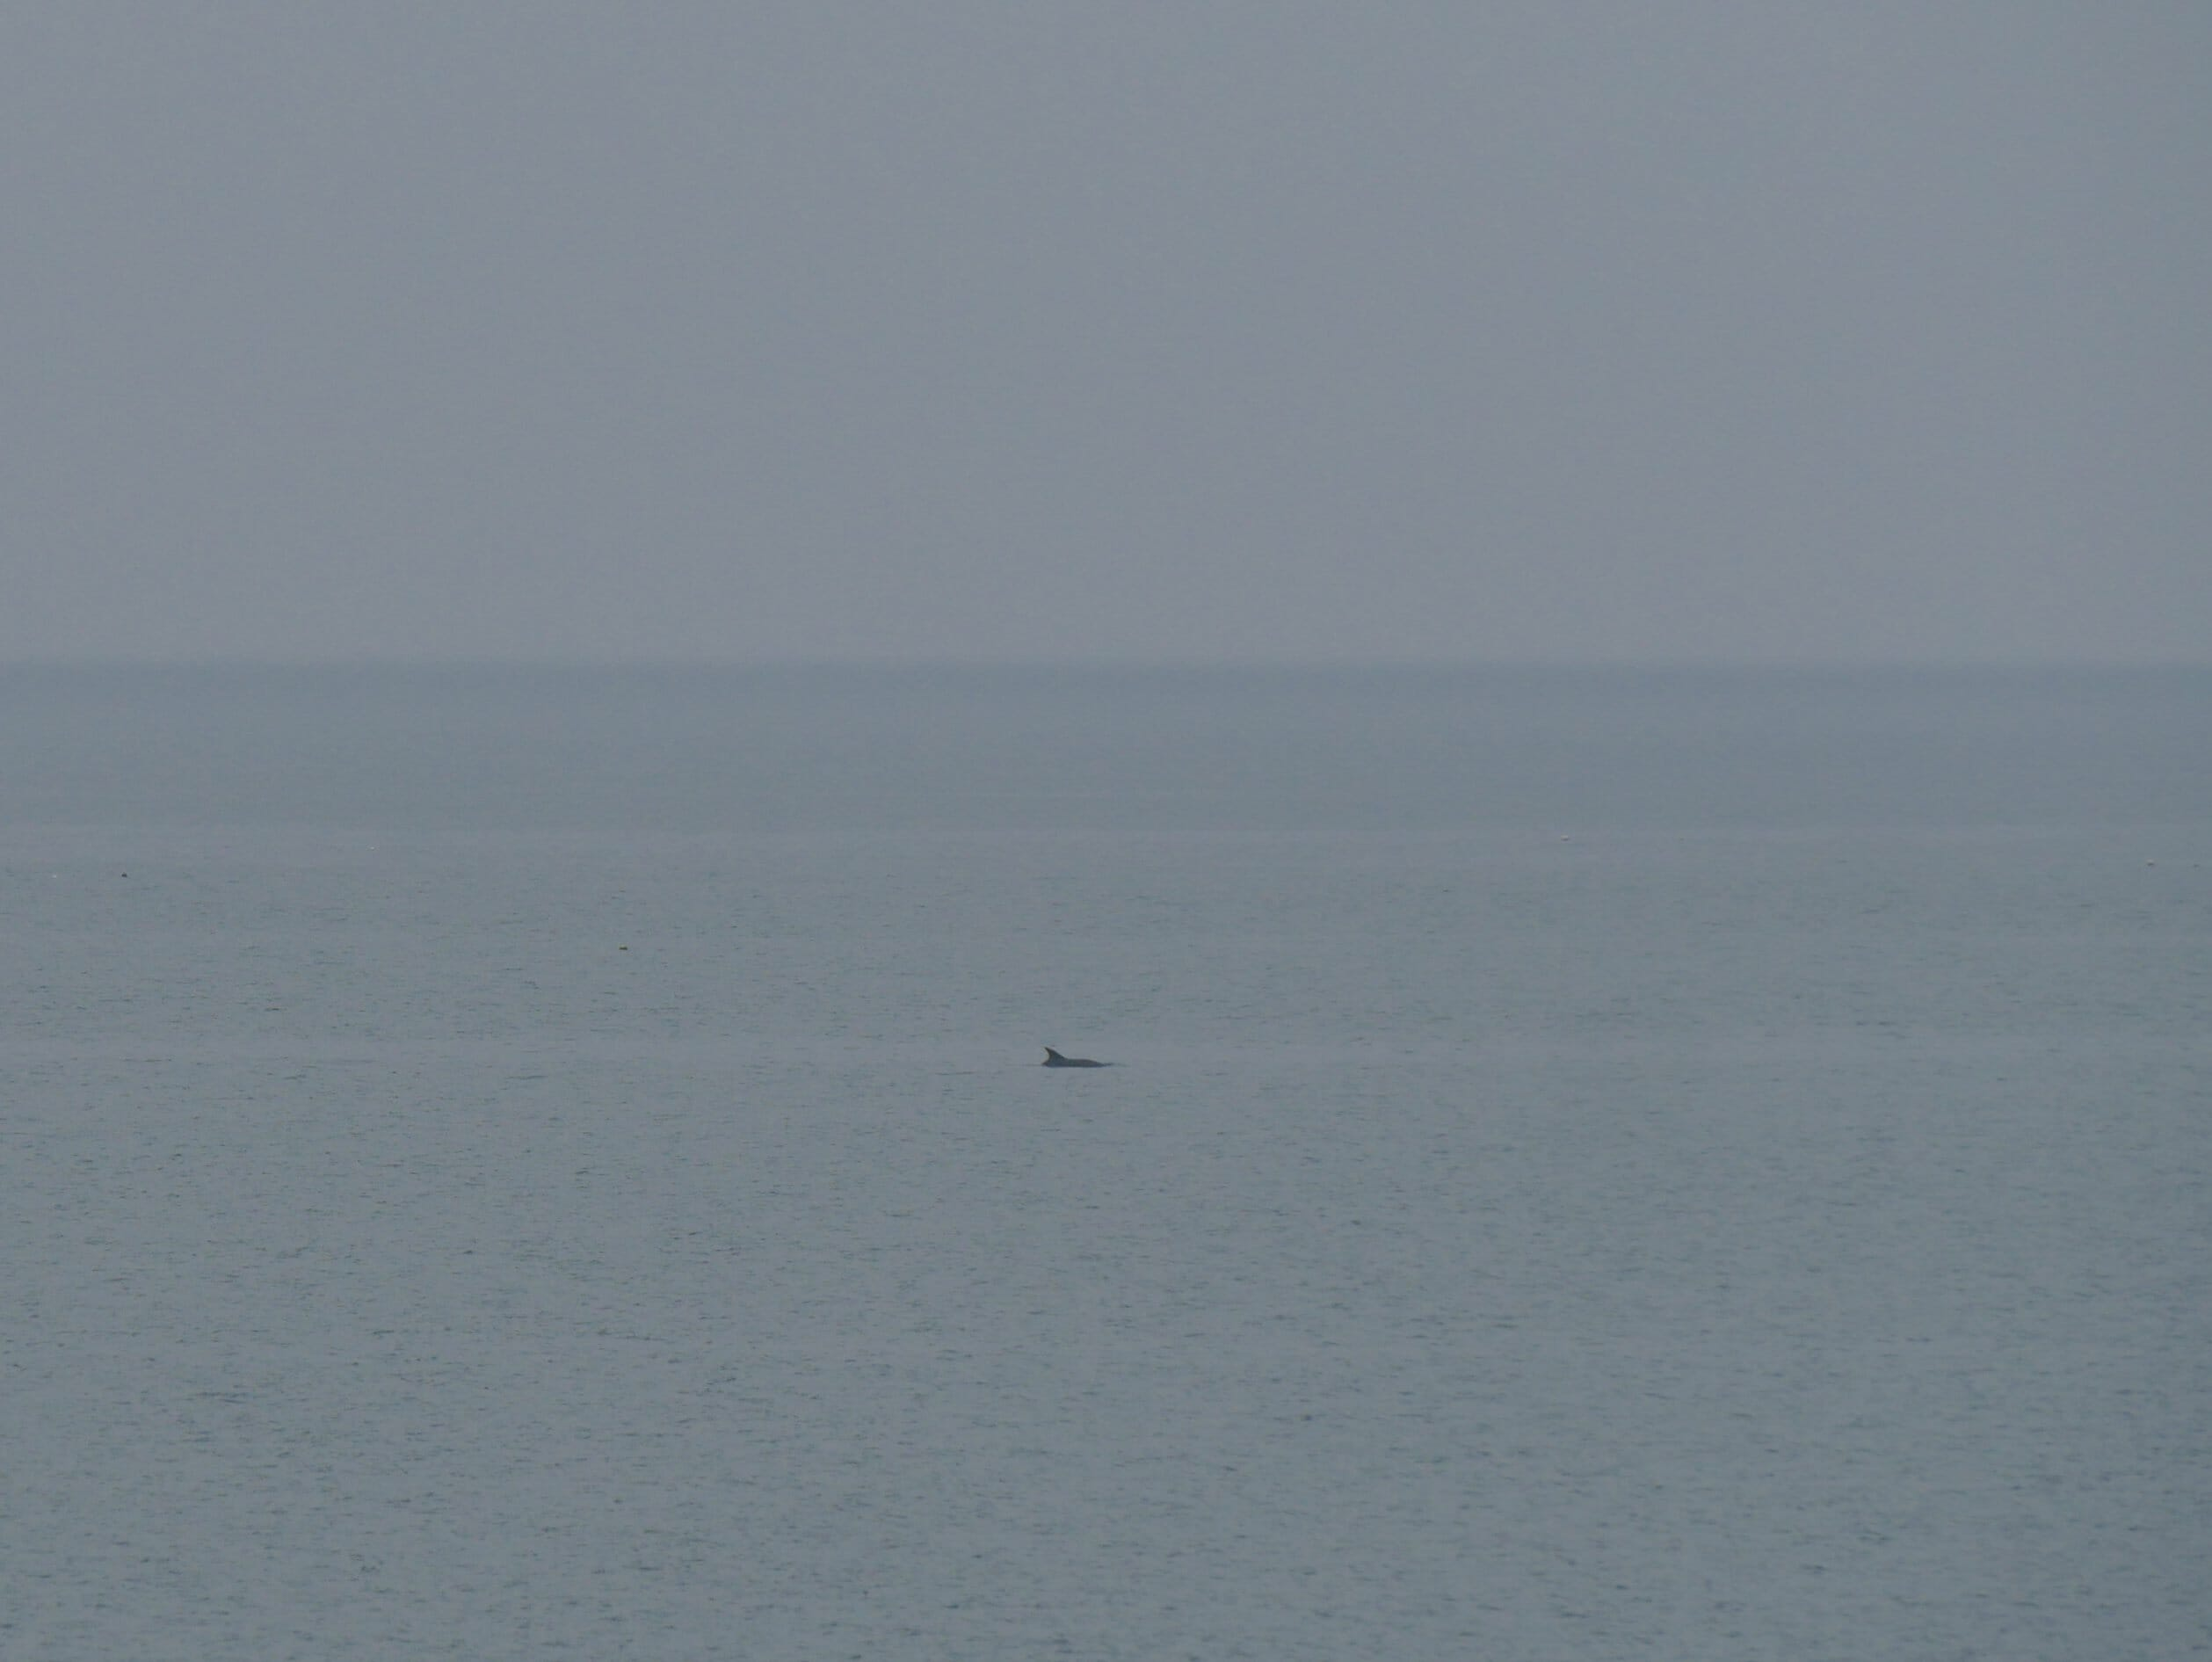 A dolphin in New Quay, Wales